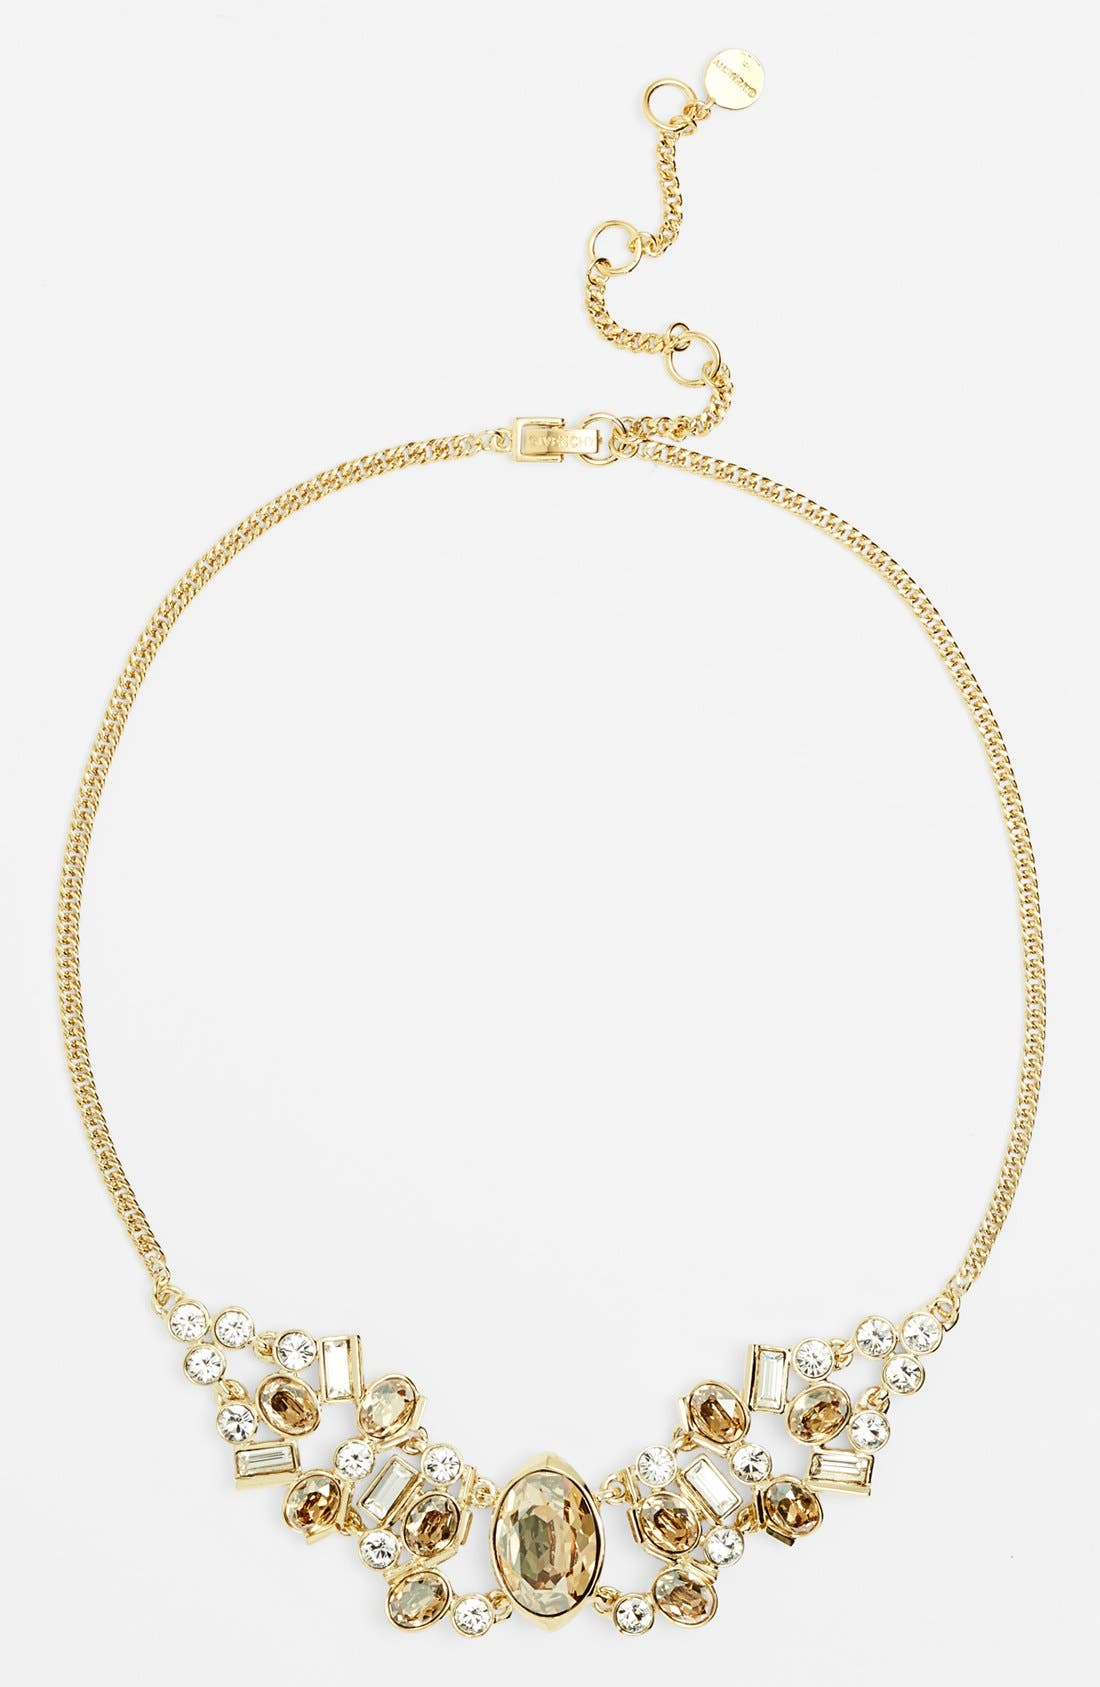 Alternate Image 1 Selected - Givenchy Bib Necklace (Nordstrom Exclusive)